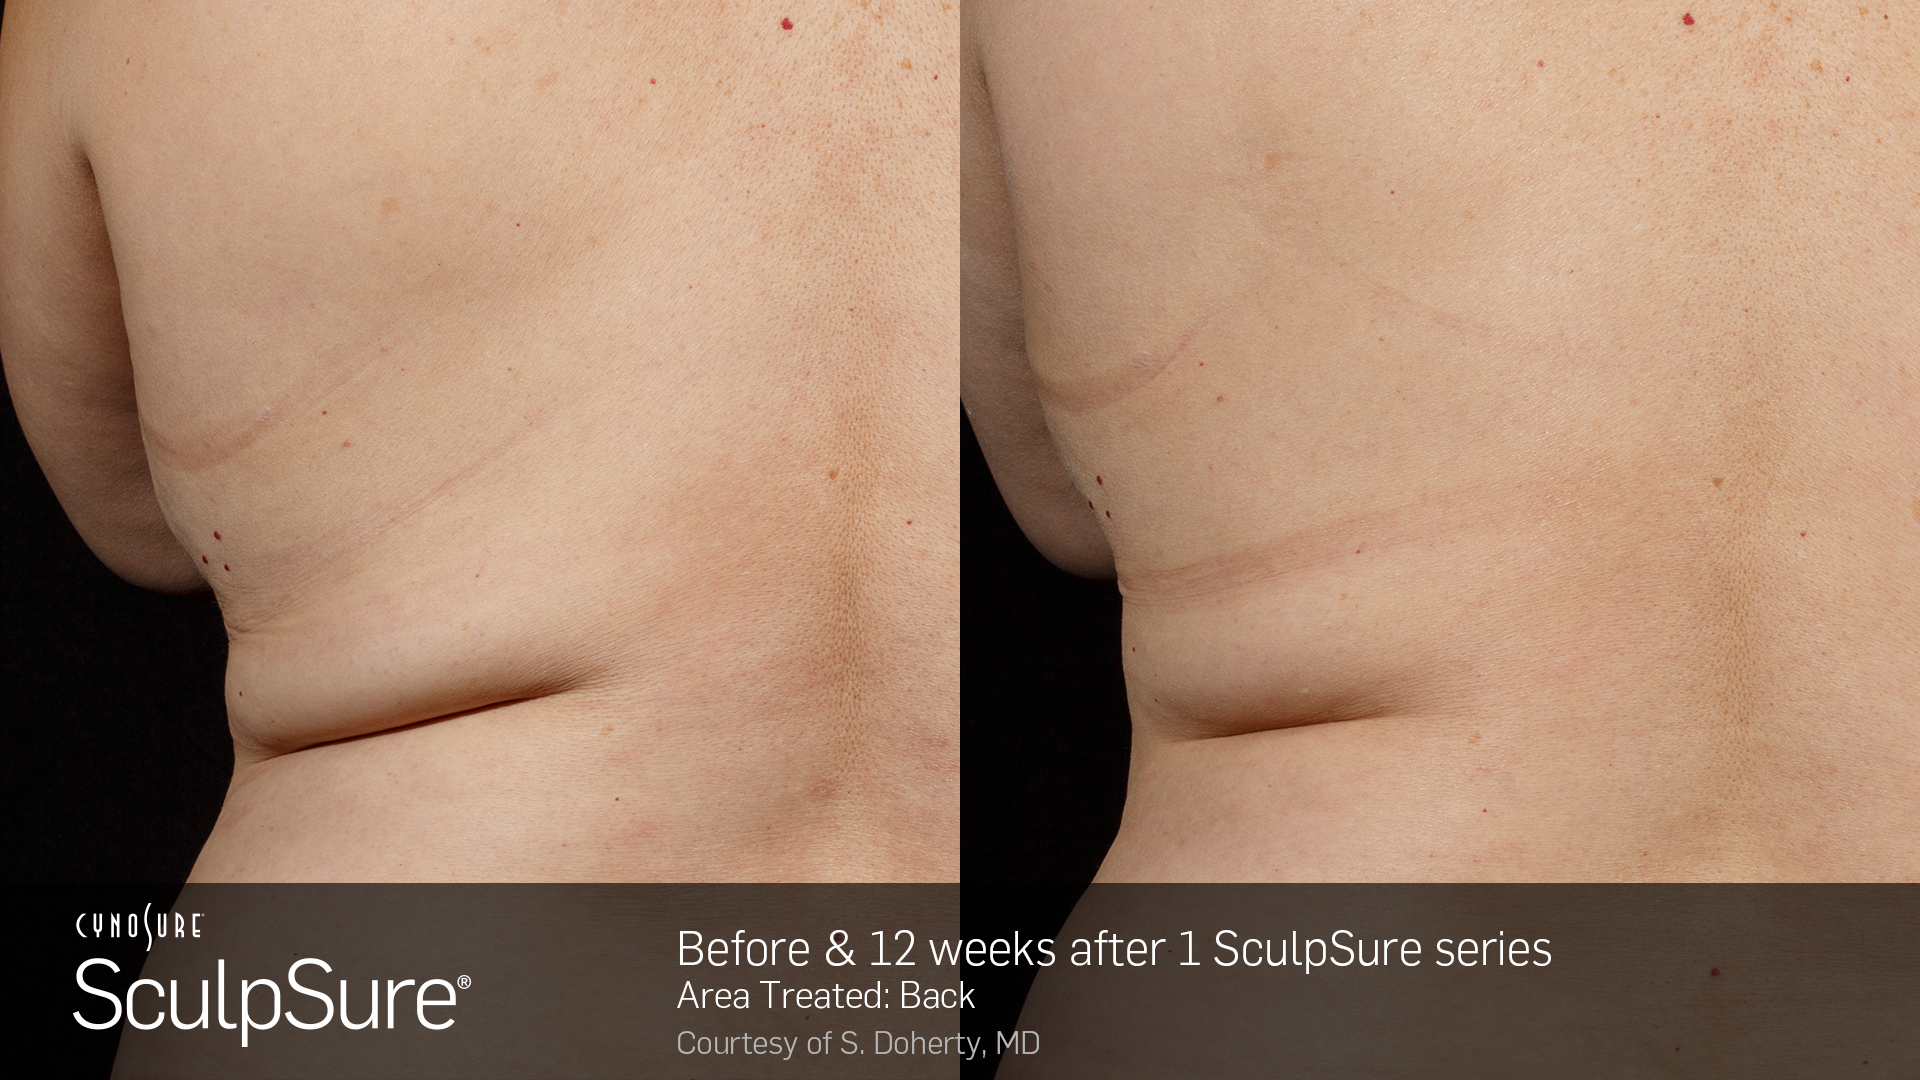 BA_SculpSure_S.Doherty_Back-2_1tx_12weeks.2